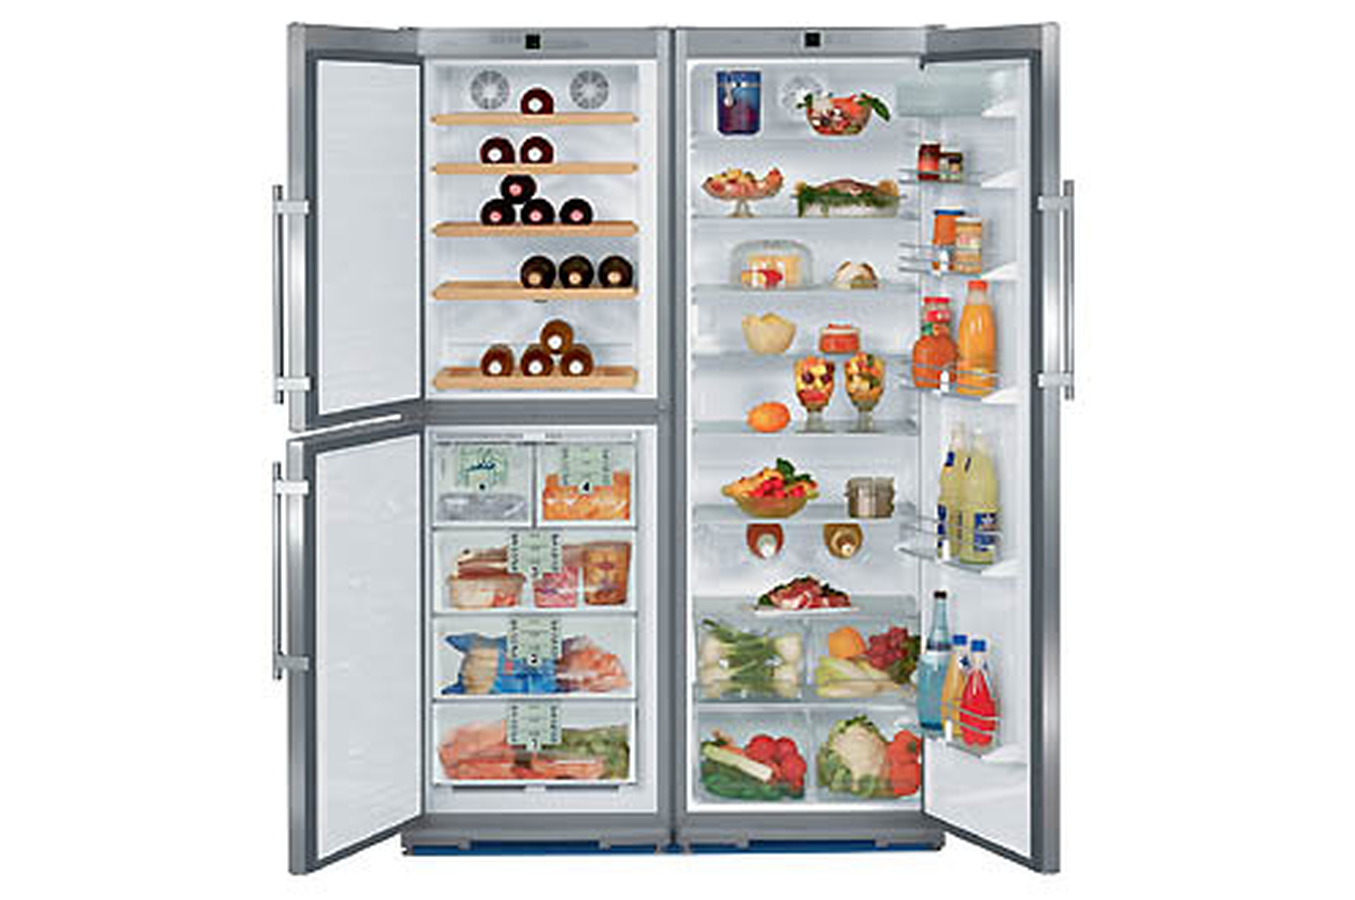 refrigerateur americain liebherr sbses 7052 4 inox sbses7052 4 1836986 darty. Black Bedroom Furniture Sets. Home Design Ideas